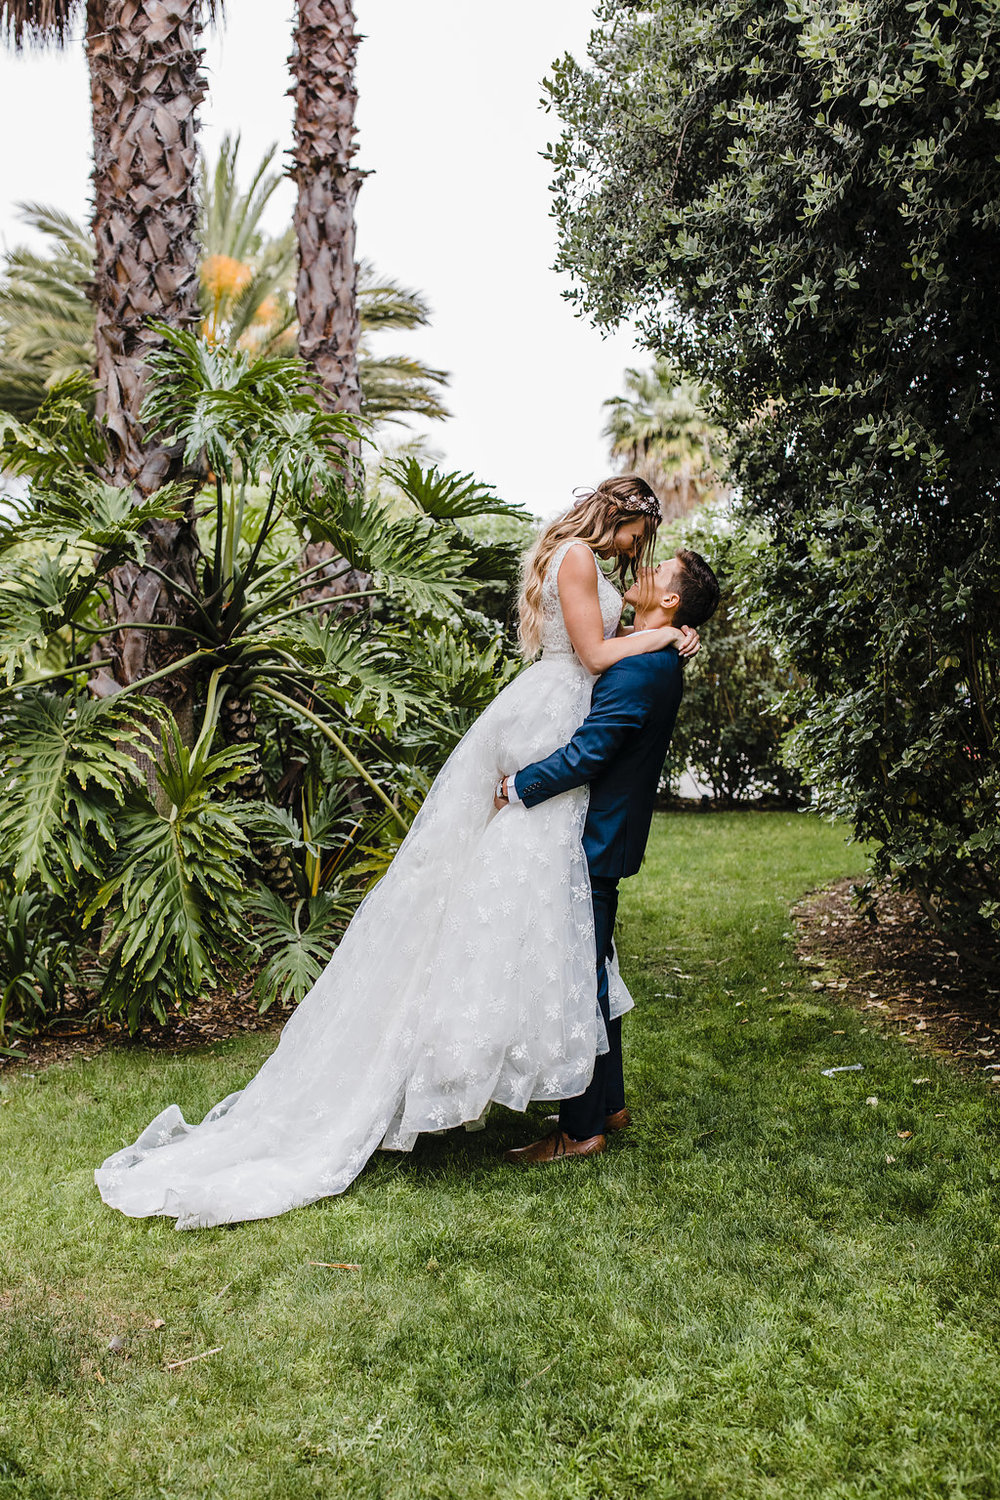 los angeles wedding day photography bride and groom palm trees